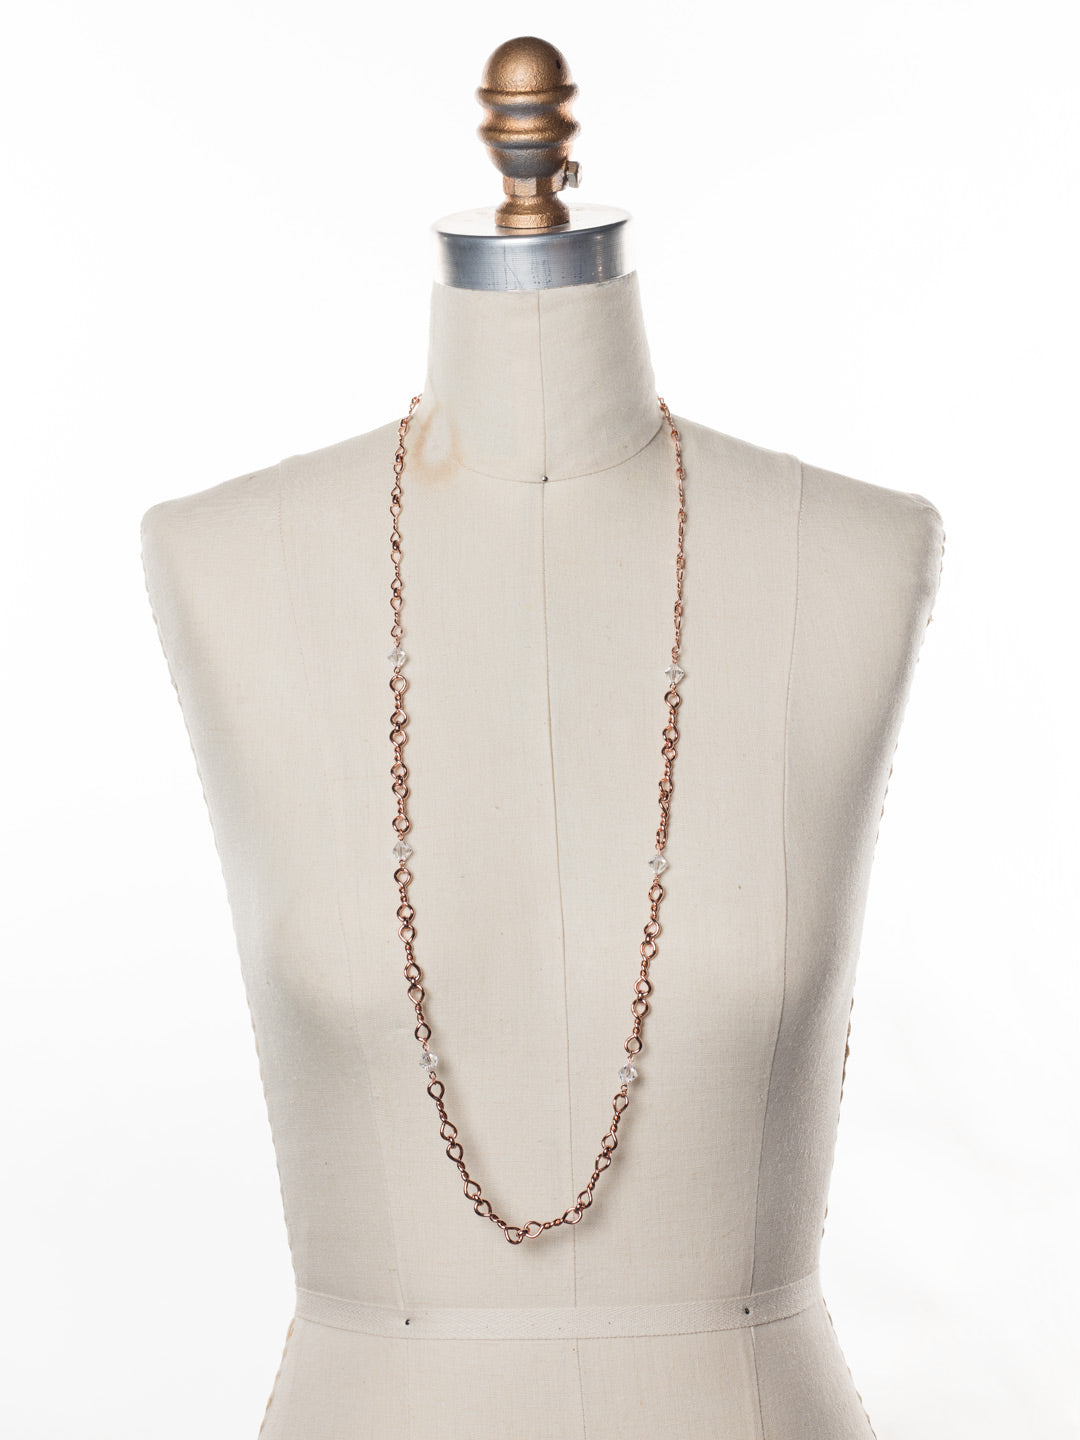 Ambretta Long Necklace - 4NES15RGCRY